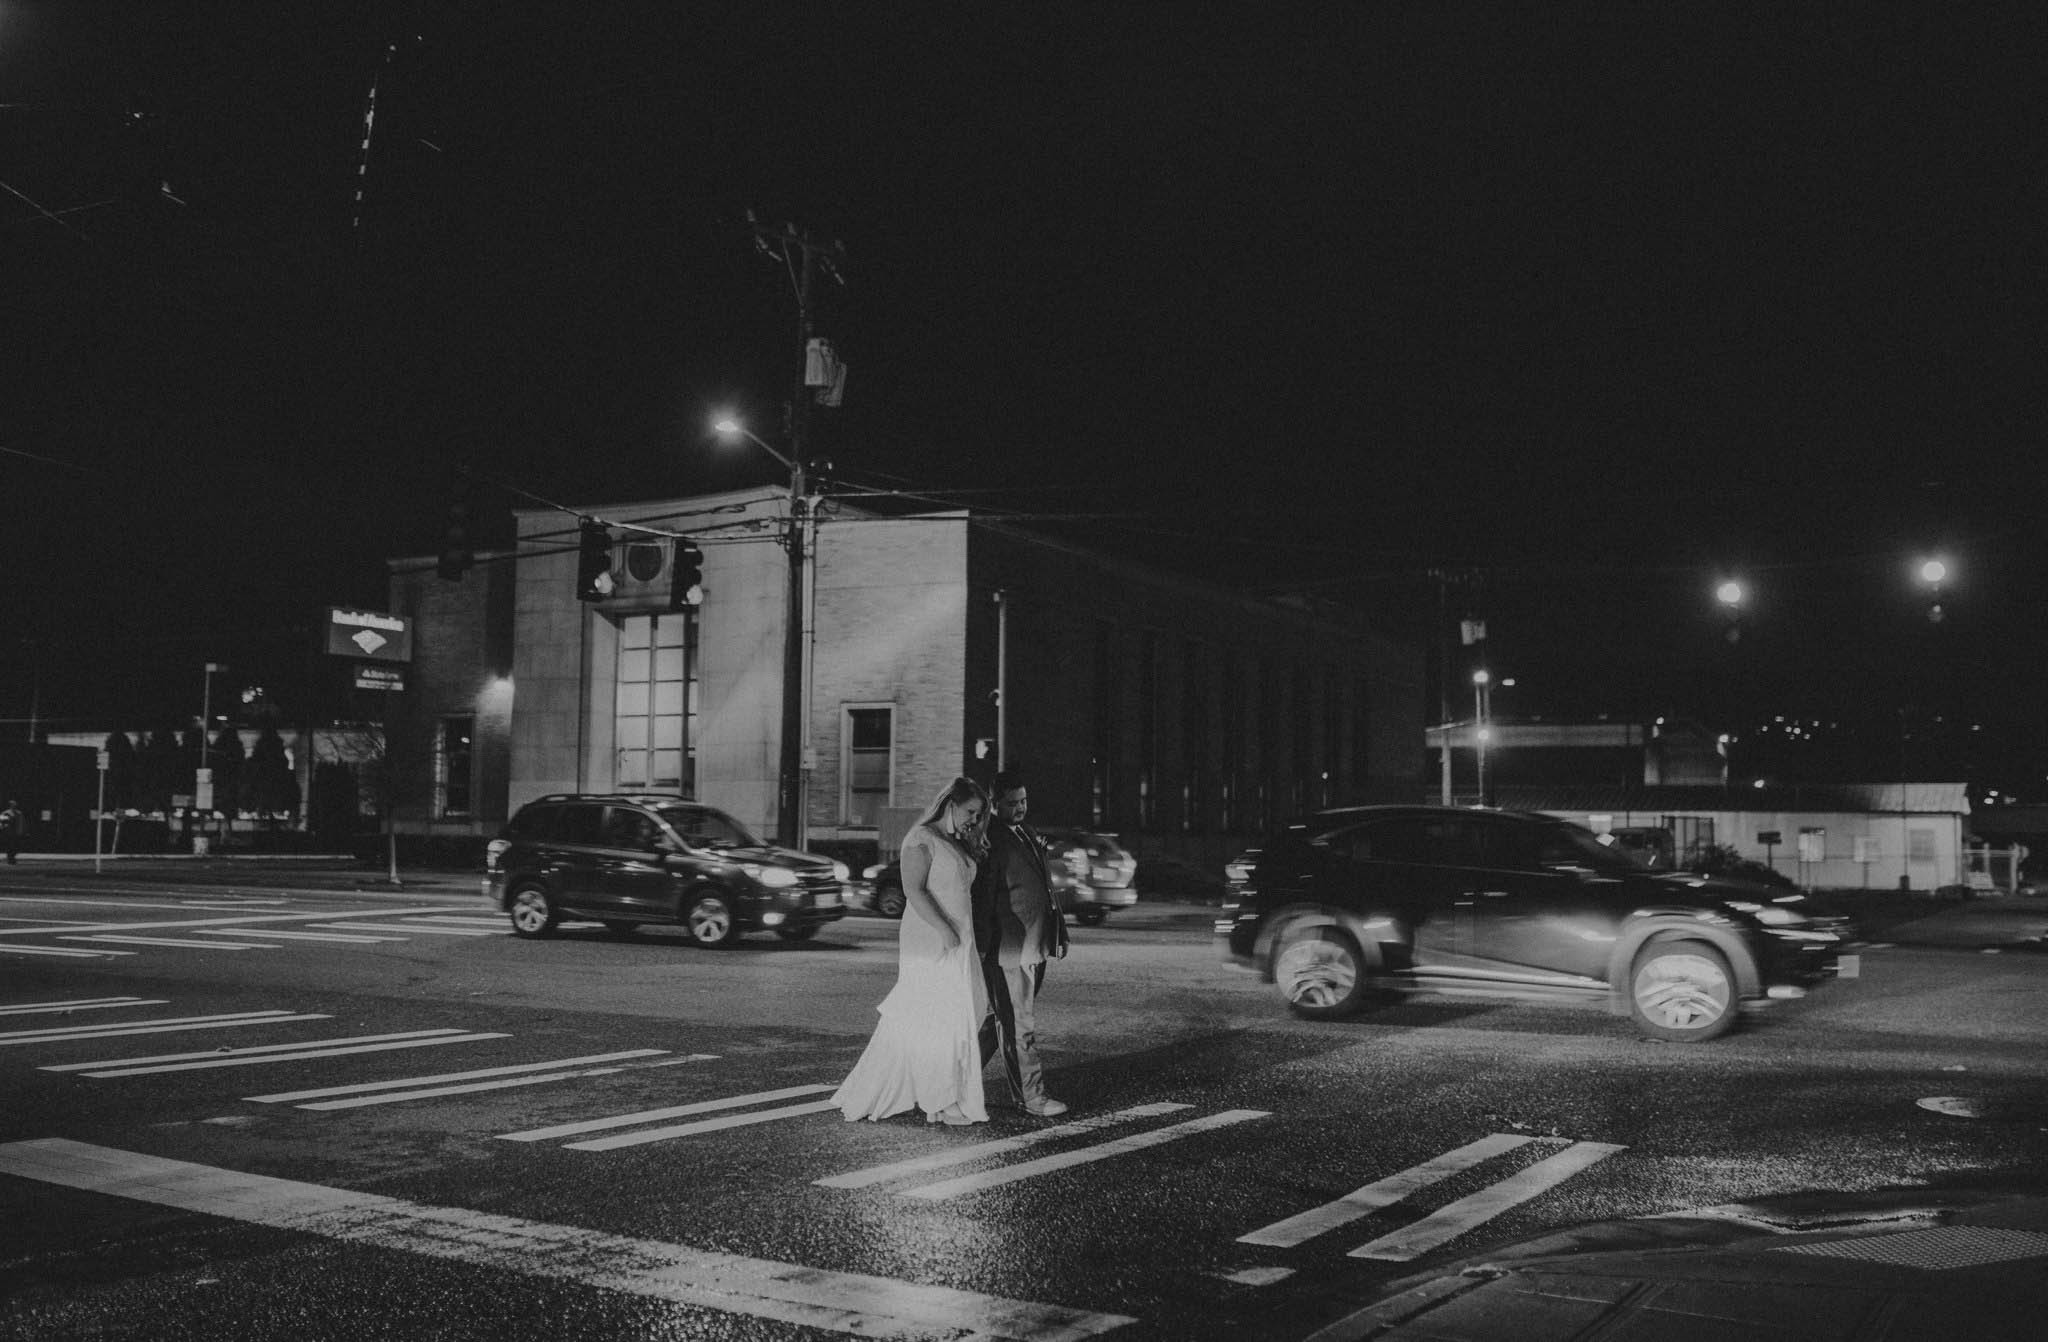 gwen-andrew-within-sodo-downtown-seattle-wedding-photographer-winter-80.jpg